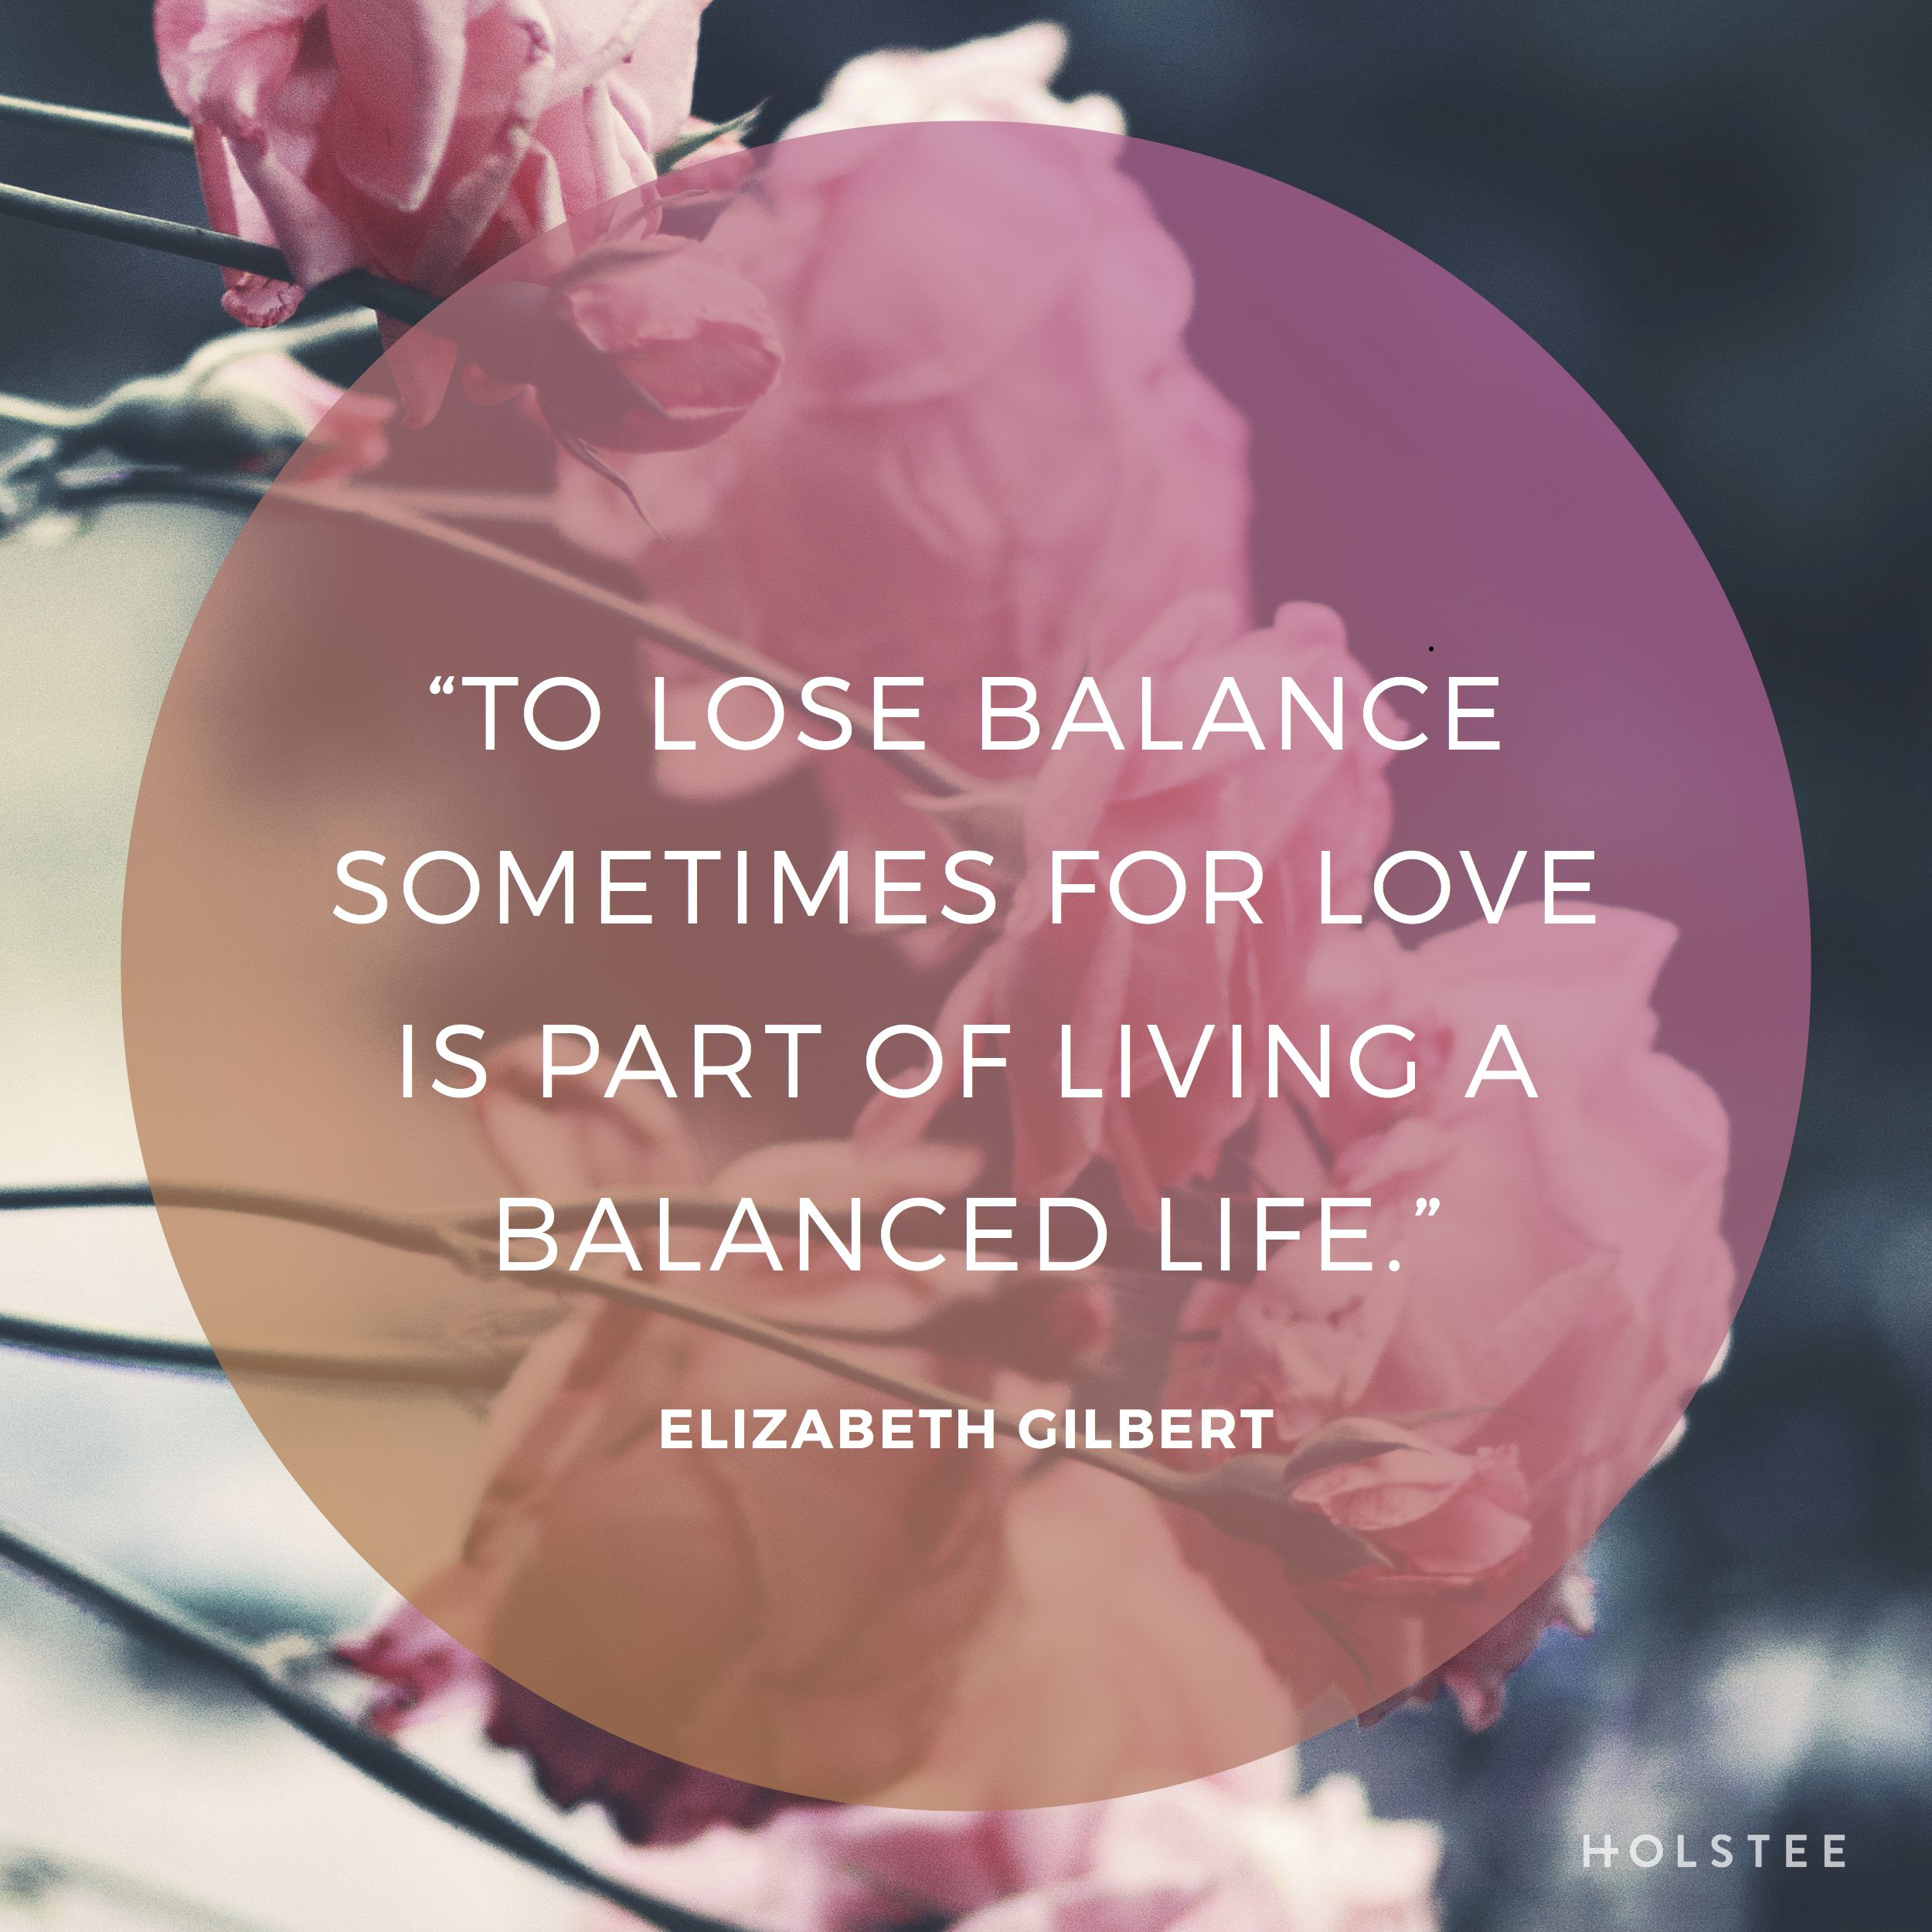 Some Timely Wisdom On Balance In Love From Elizabeth